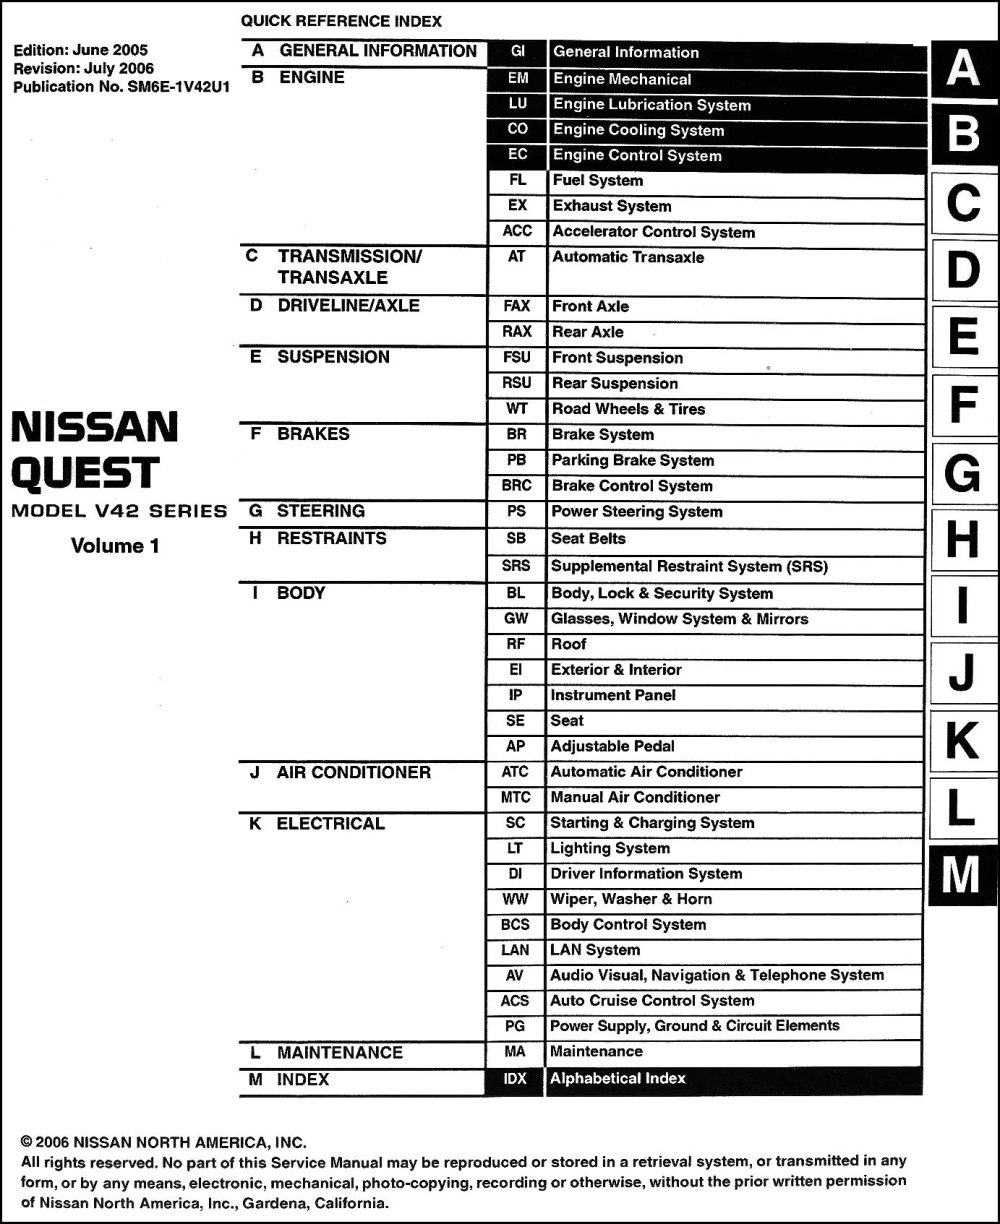 medium resolution of nissan quest fuse box wiring diagram sample1996 nissan quest fuse diagram wiring diagram mega 2006 nissan